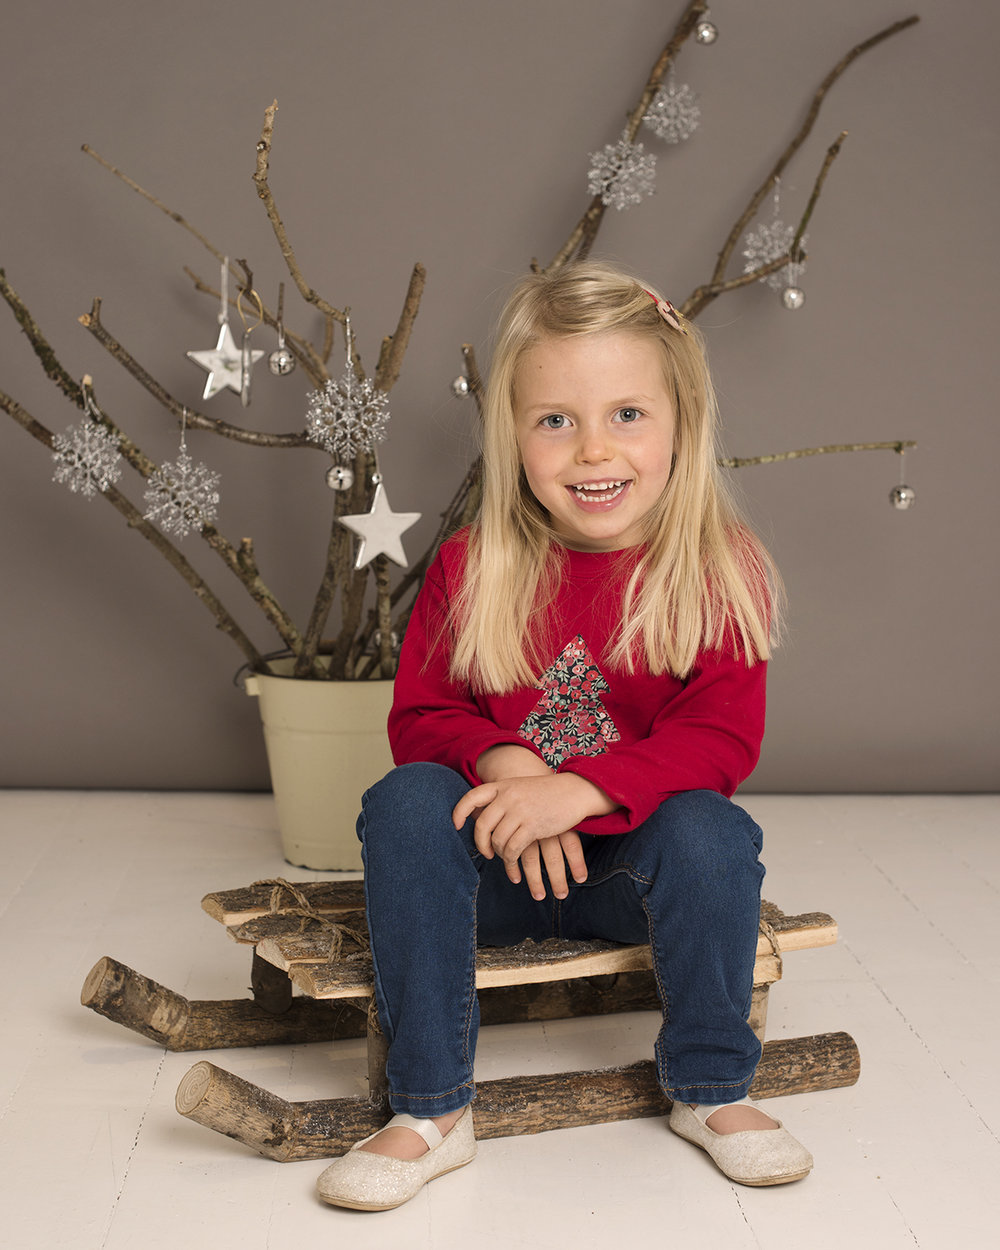 30 minute Christmas mini shoots are £99 - 3 high resolution digital images included.